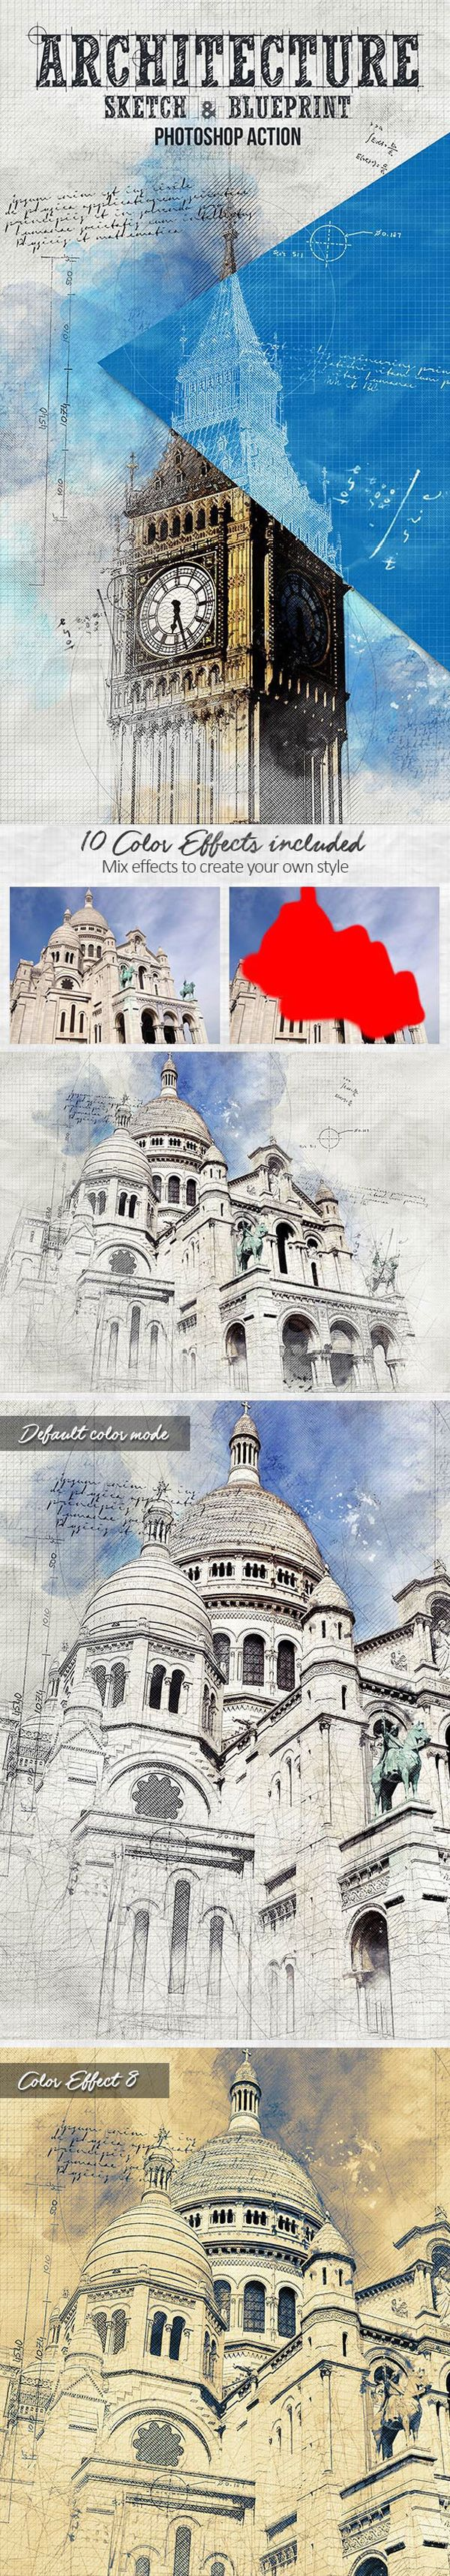 Architecture Sketch and Blueprint Photoshop Action #digitalphotography #photoeffect #photoshopactions #tutorials